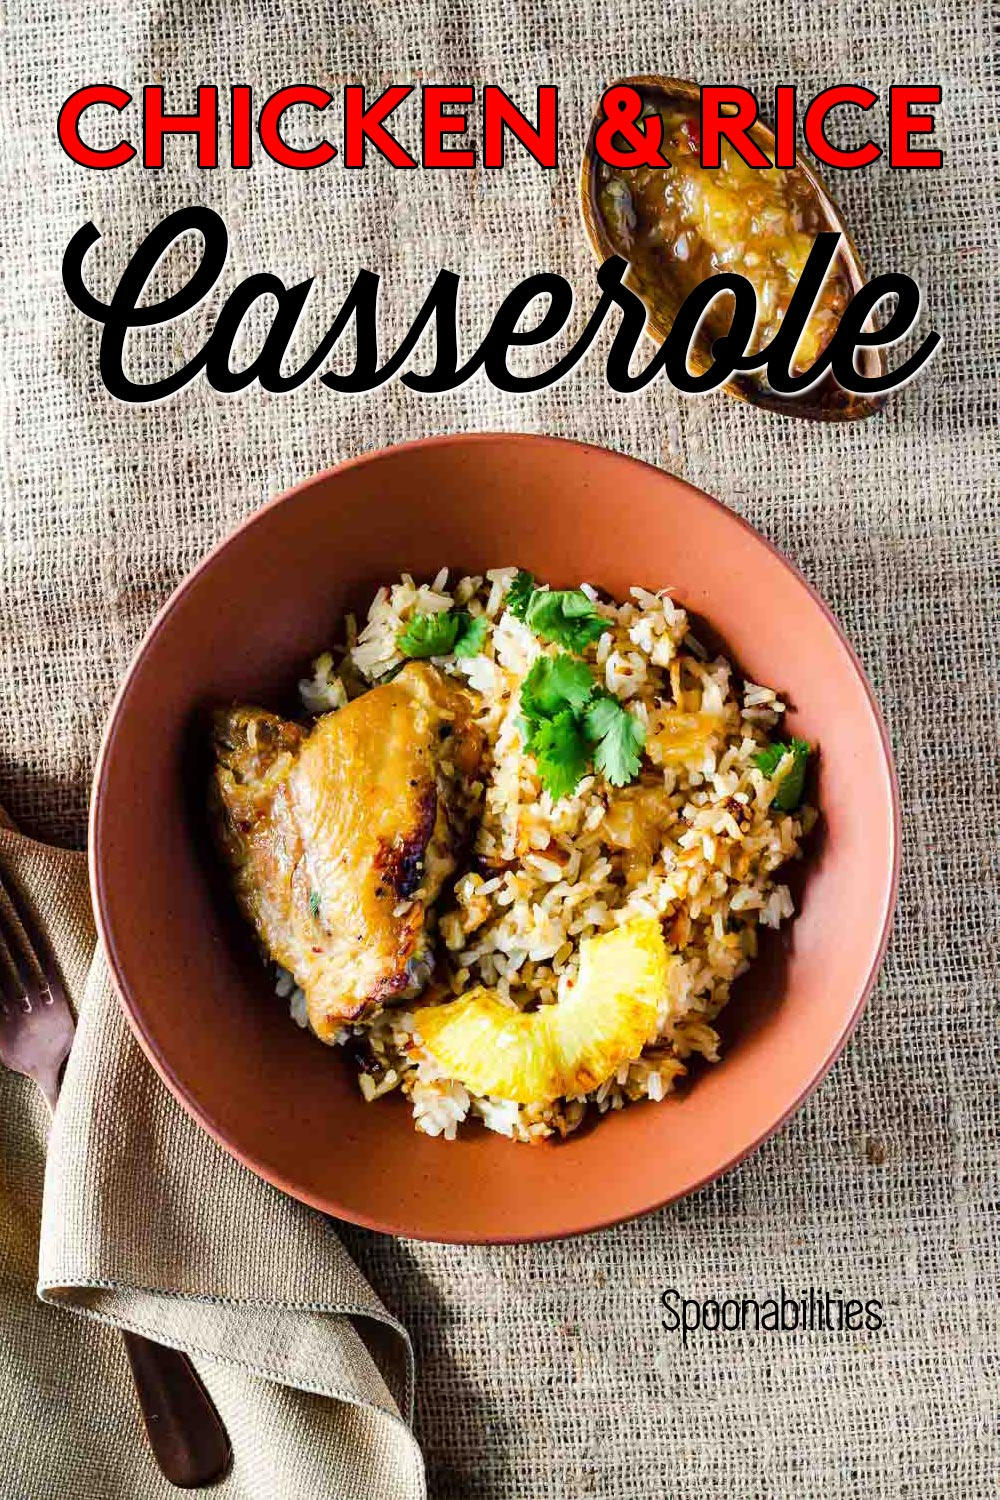 Easy Chicken and Rice Casserole with Roasted Pineapple Habanero Sauce